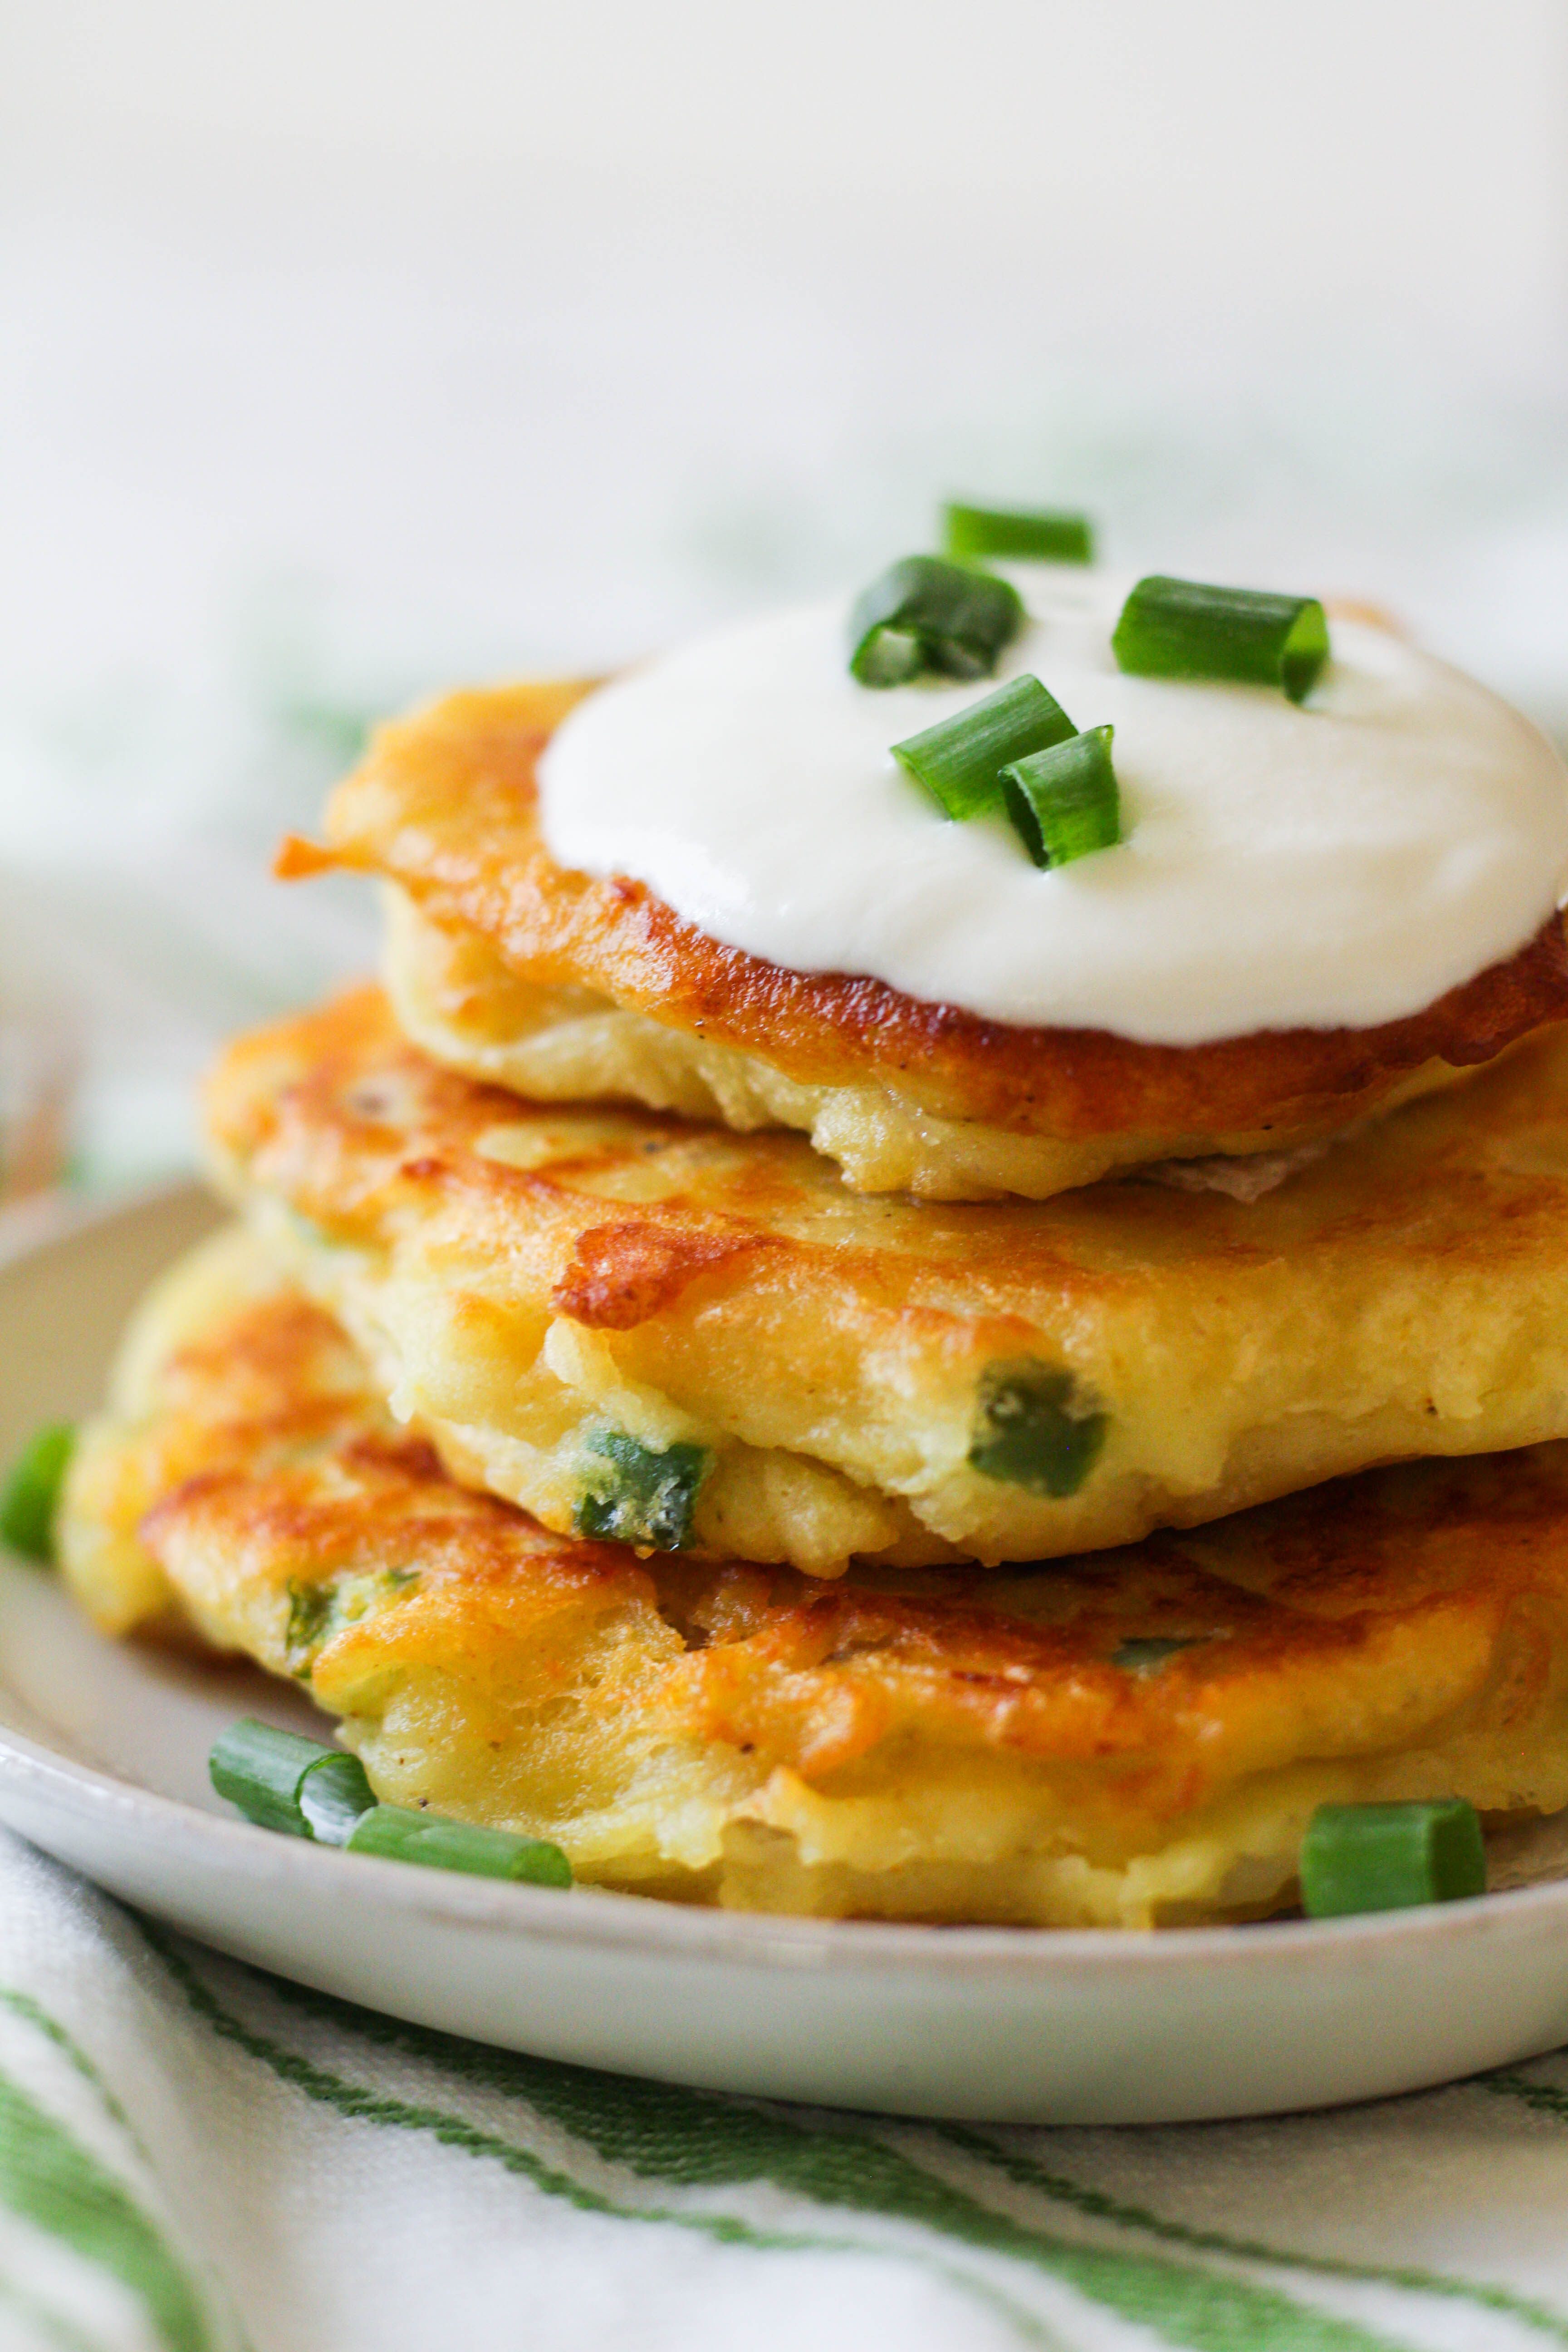 Crispy and golden, these spicy curry potato pancakes are the perfect way to use up leftover mashed potatoes.